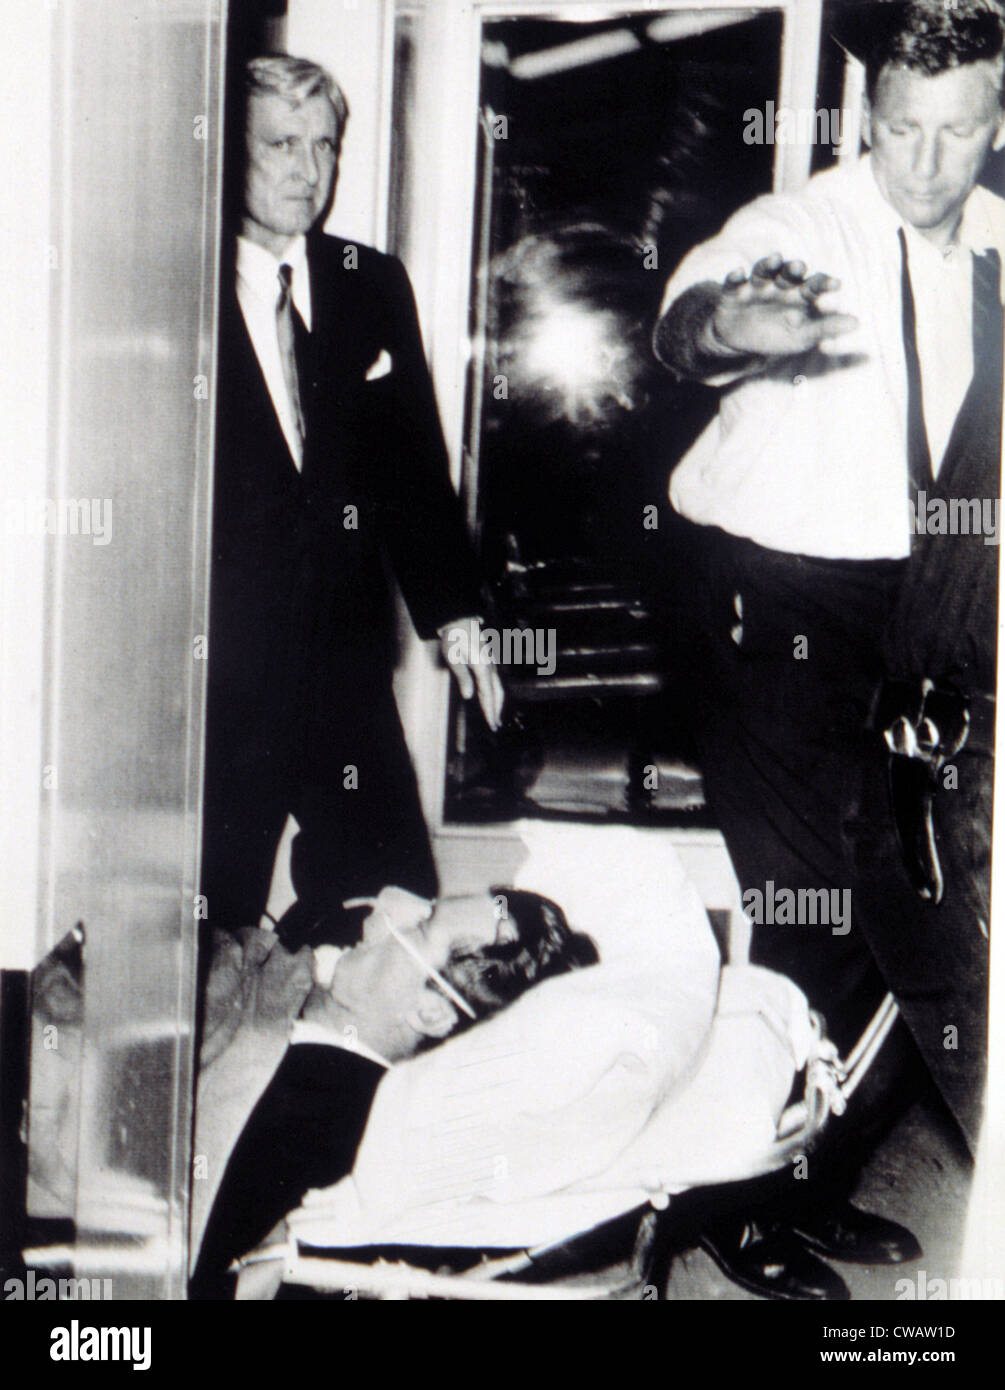 ROBERT KENNEDY, transported to hospital after being shot, June 5, 1968. Courtesy: CSU Archives / Everett Collection Stock Photo